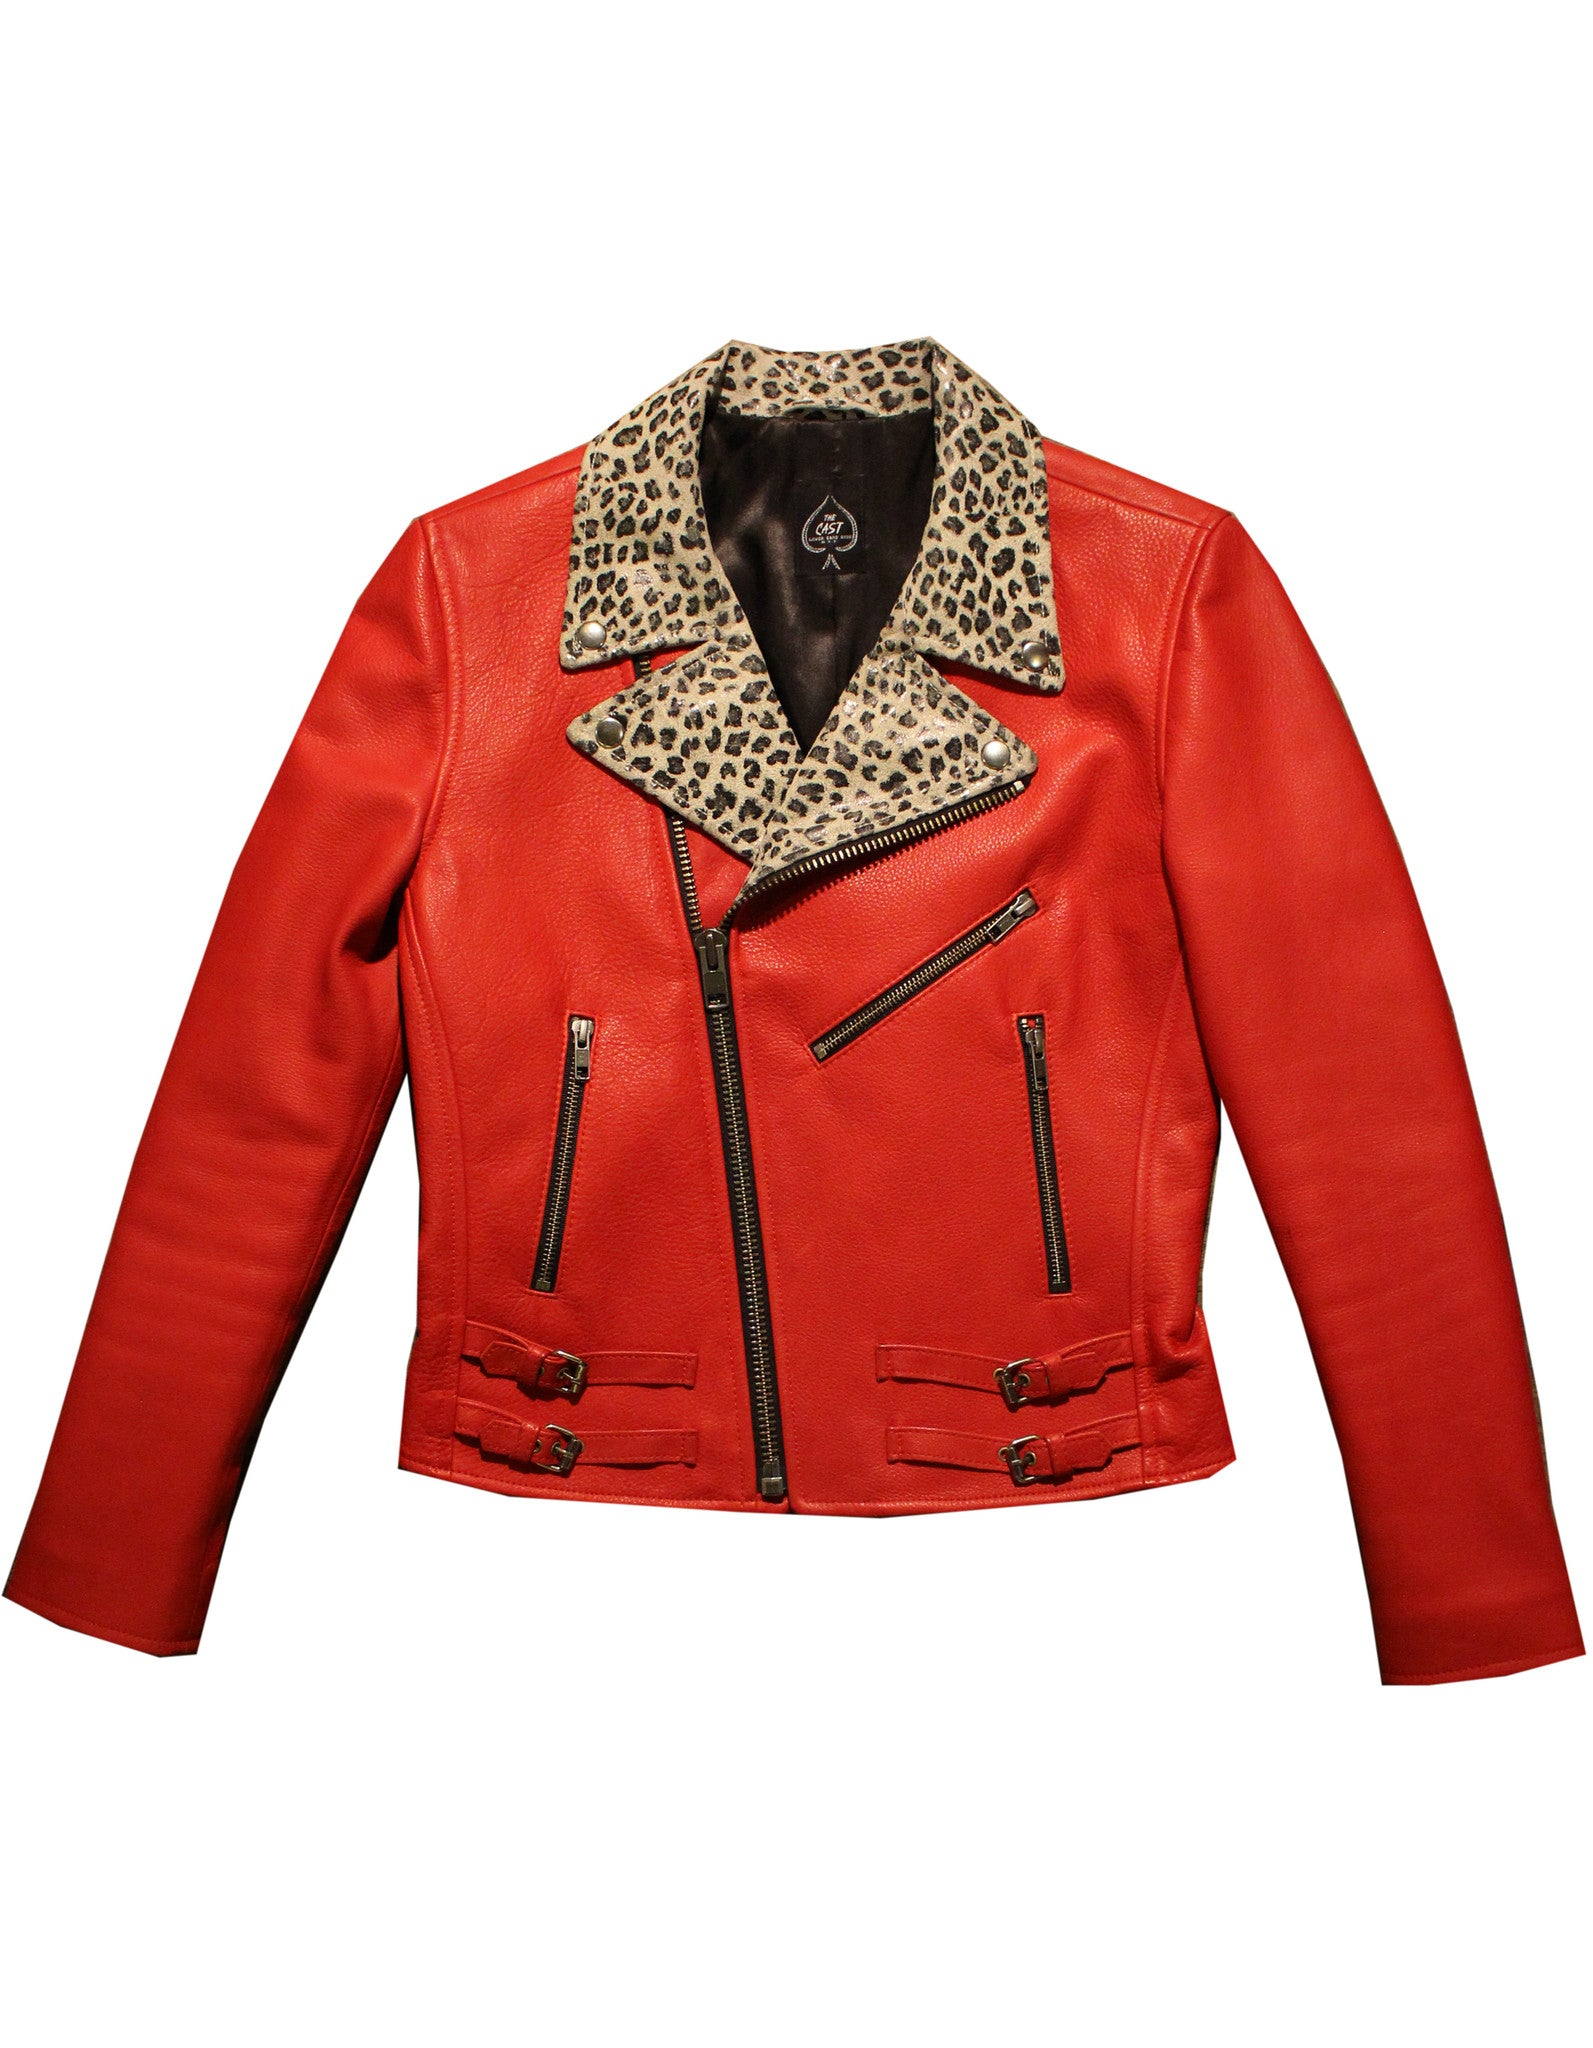 Essex Jacket (Red Cowhide w/Leopard Lapels) *MADE-TO-ORDER*